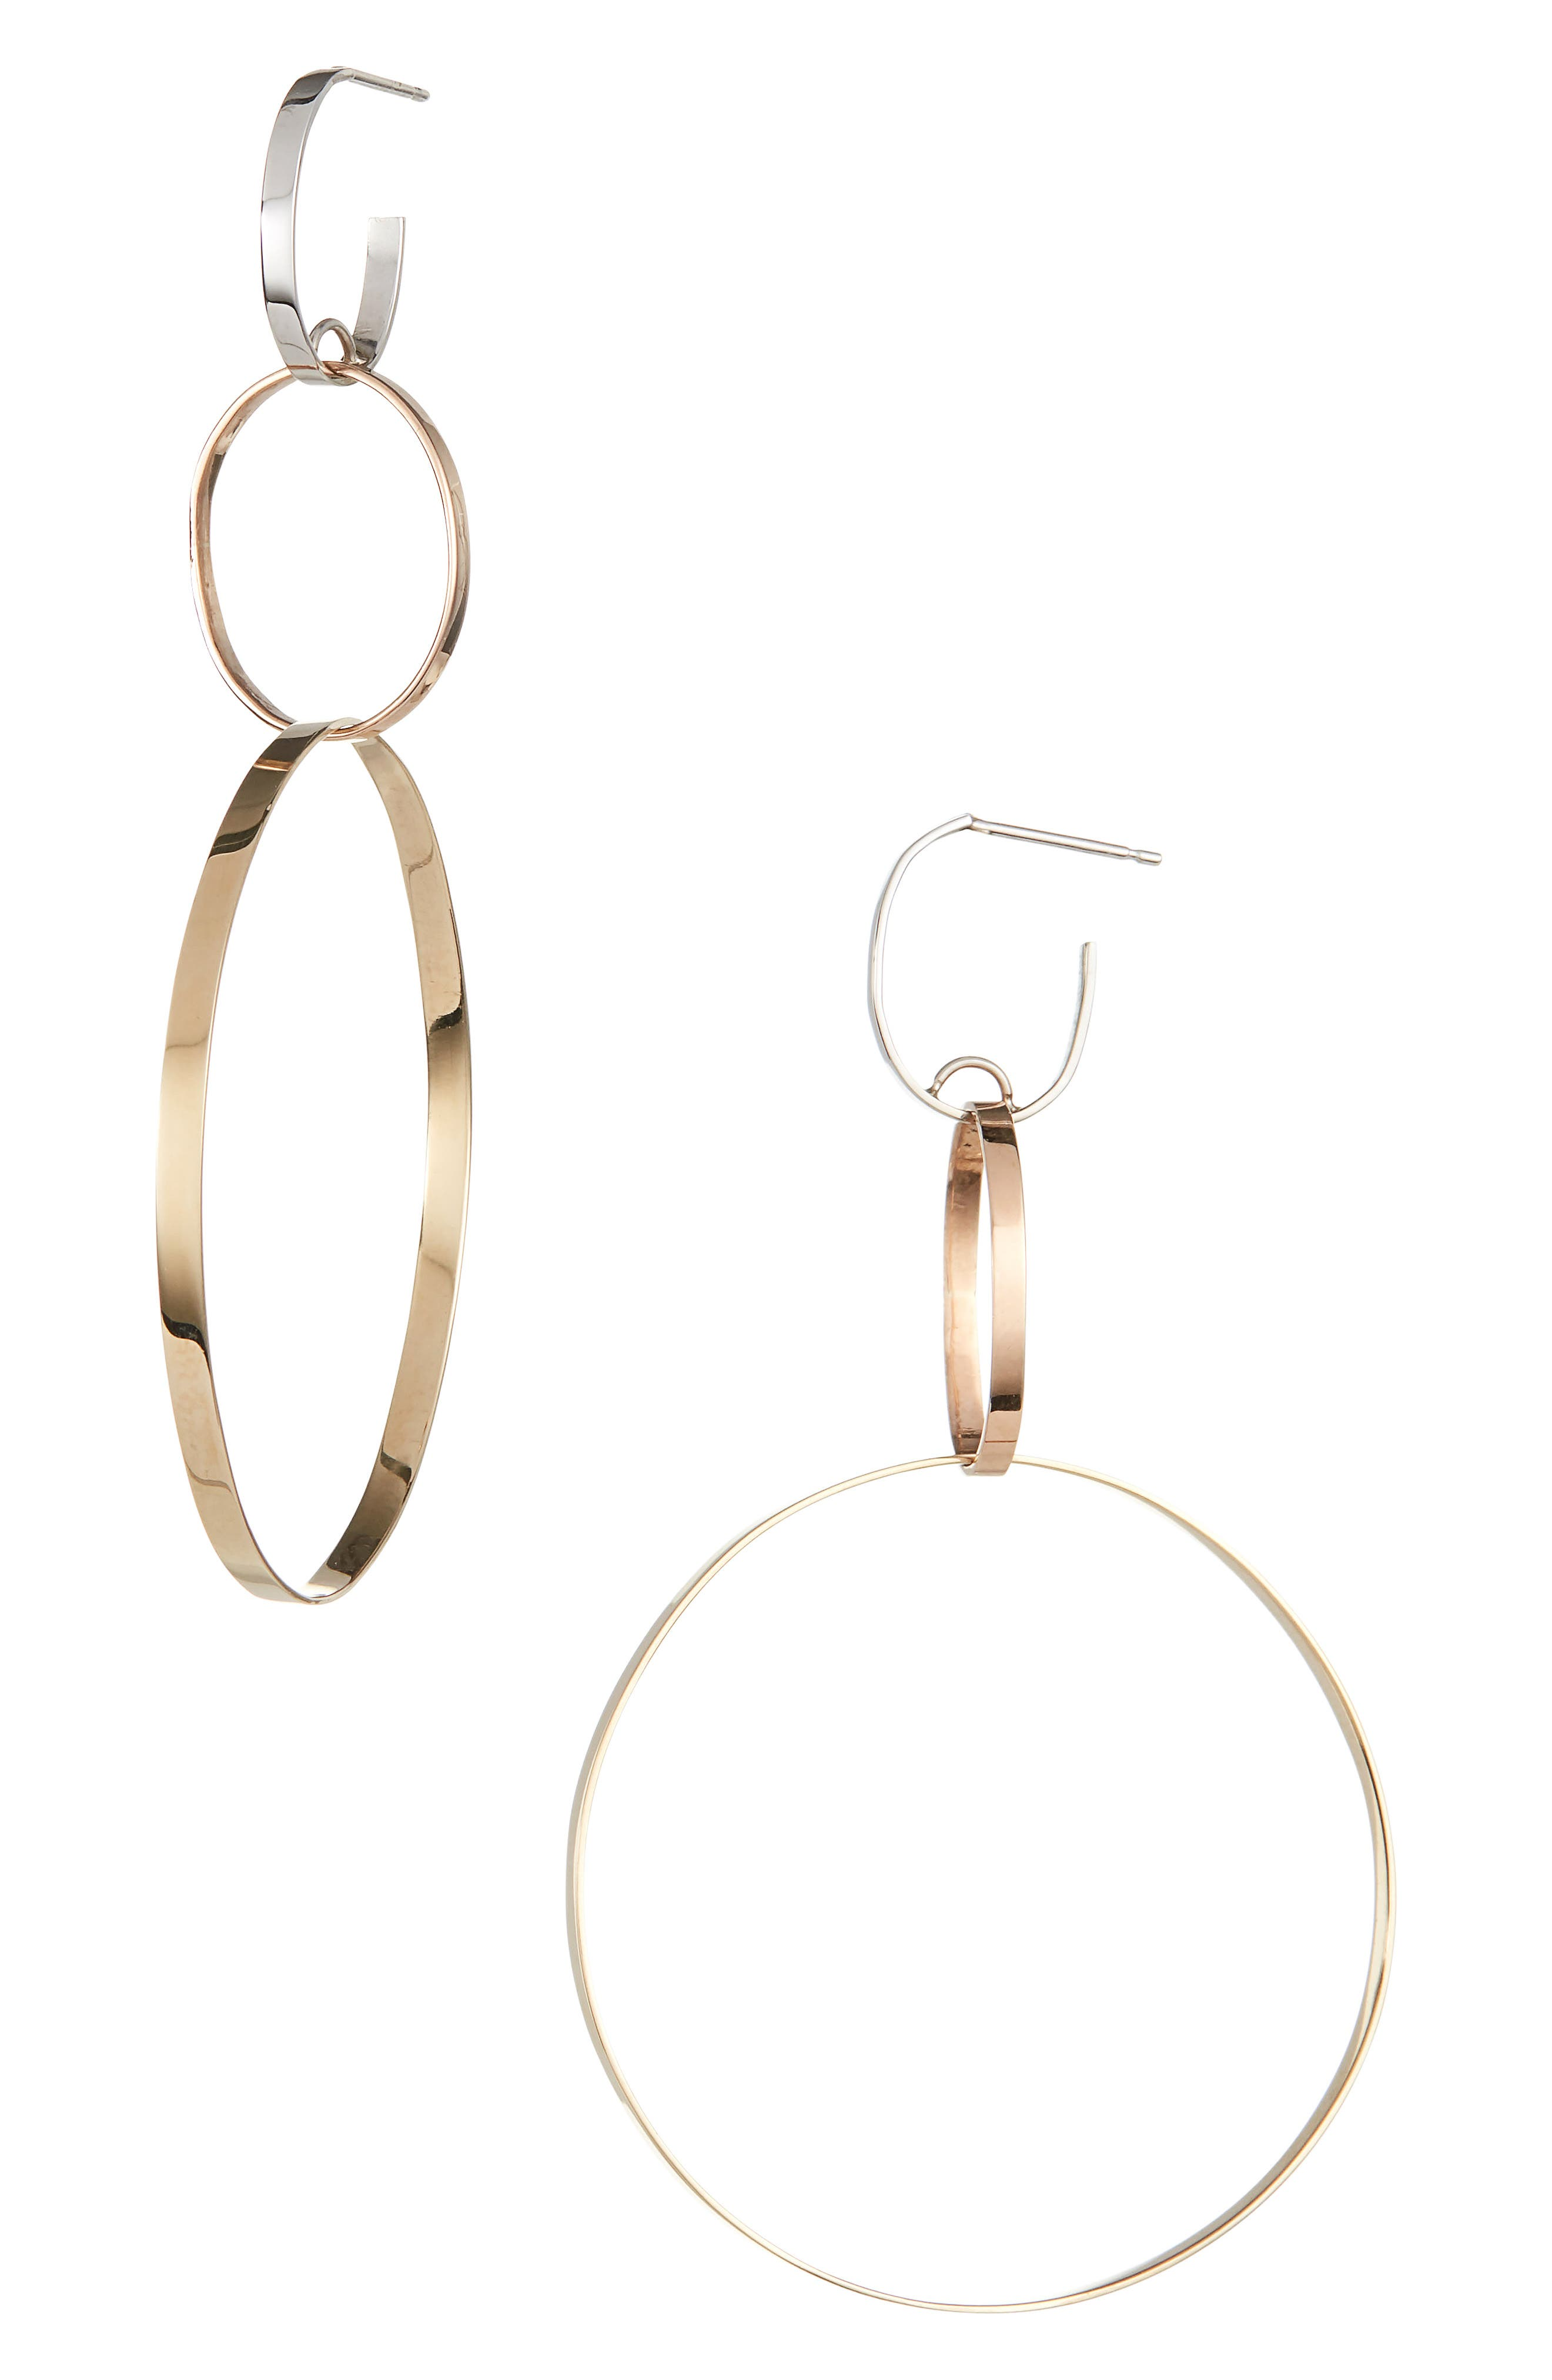 LANA JEWELRY 14K Tricolor Gold 3-Link Hoop Earrings in Gold/ Rose Gold/ White Gold